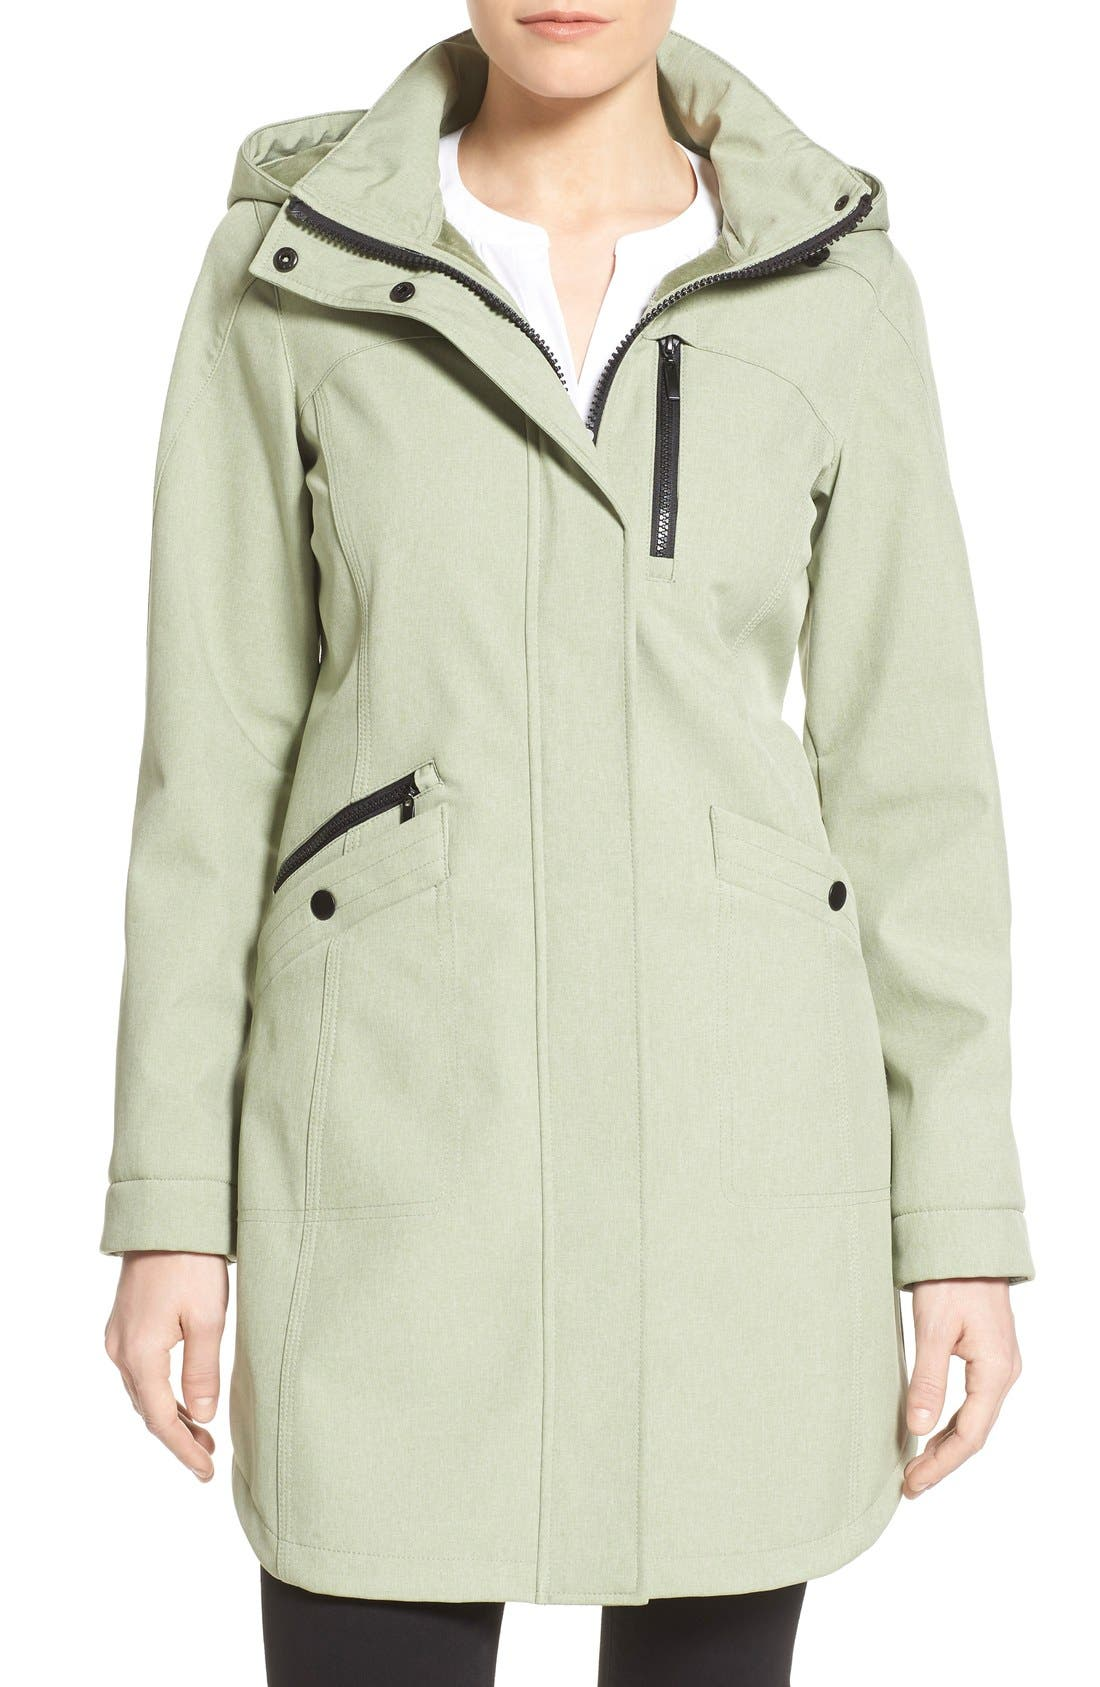 Main Image - Kristen Blake Crossdye Hooded Soft Shell Jacket (Regular & Petite)